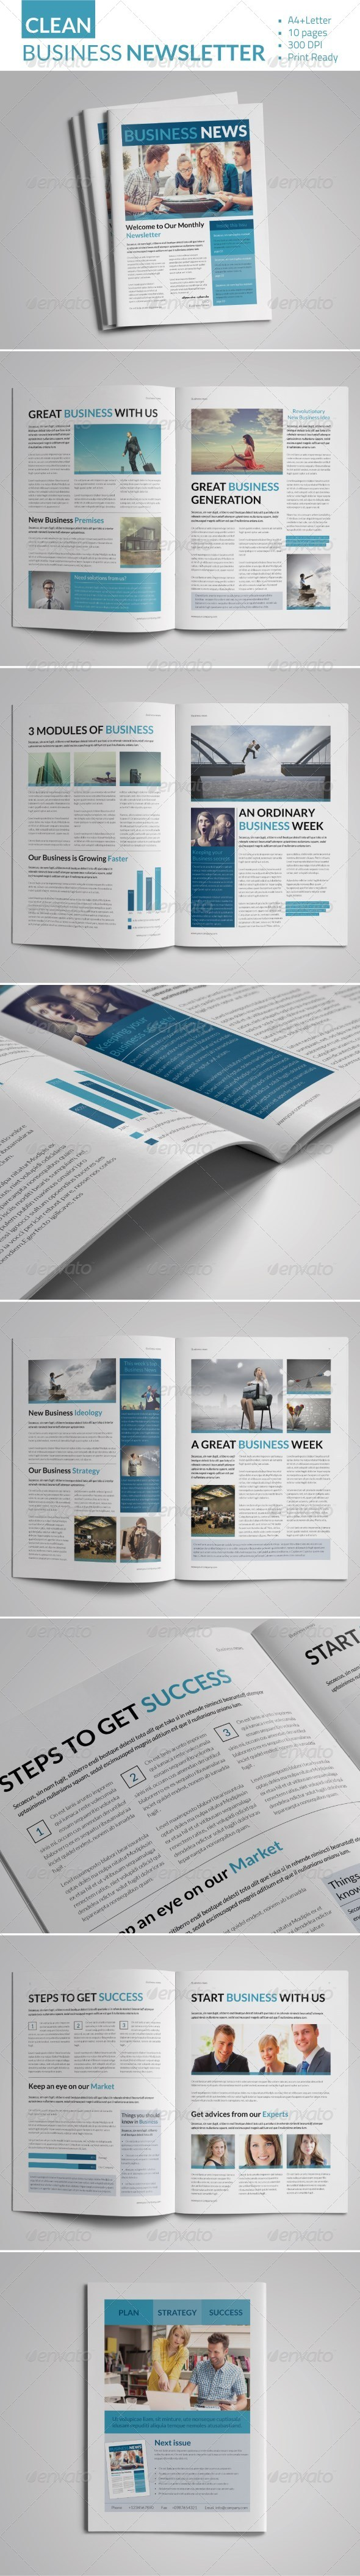 GraphicRiver Clean Business Newsletter 7636667